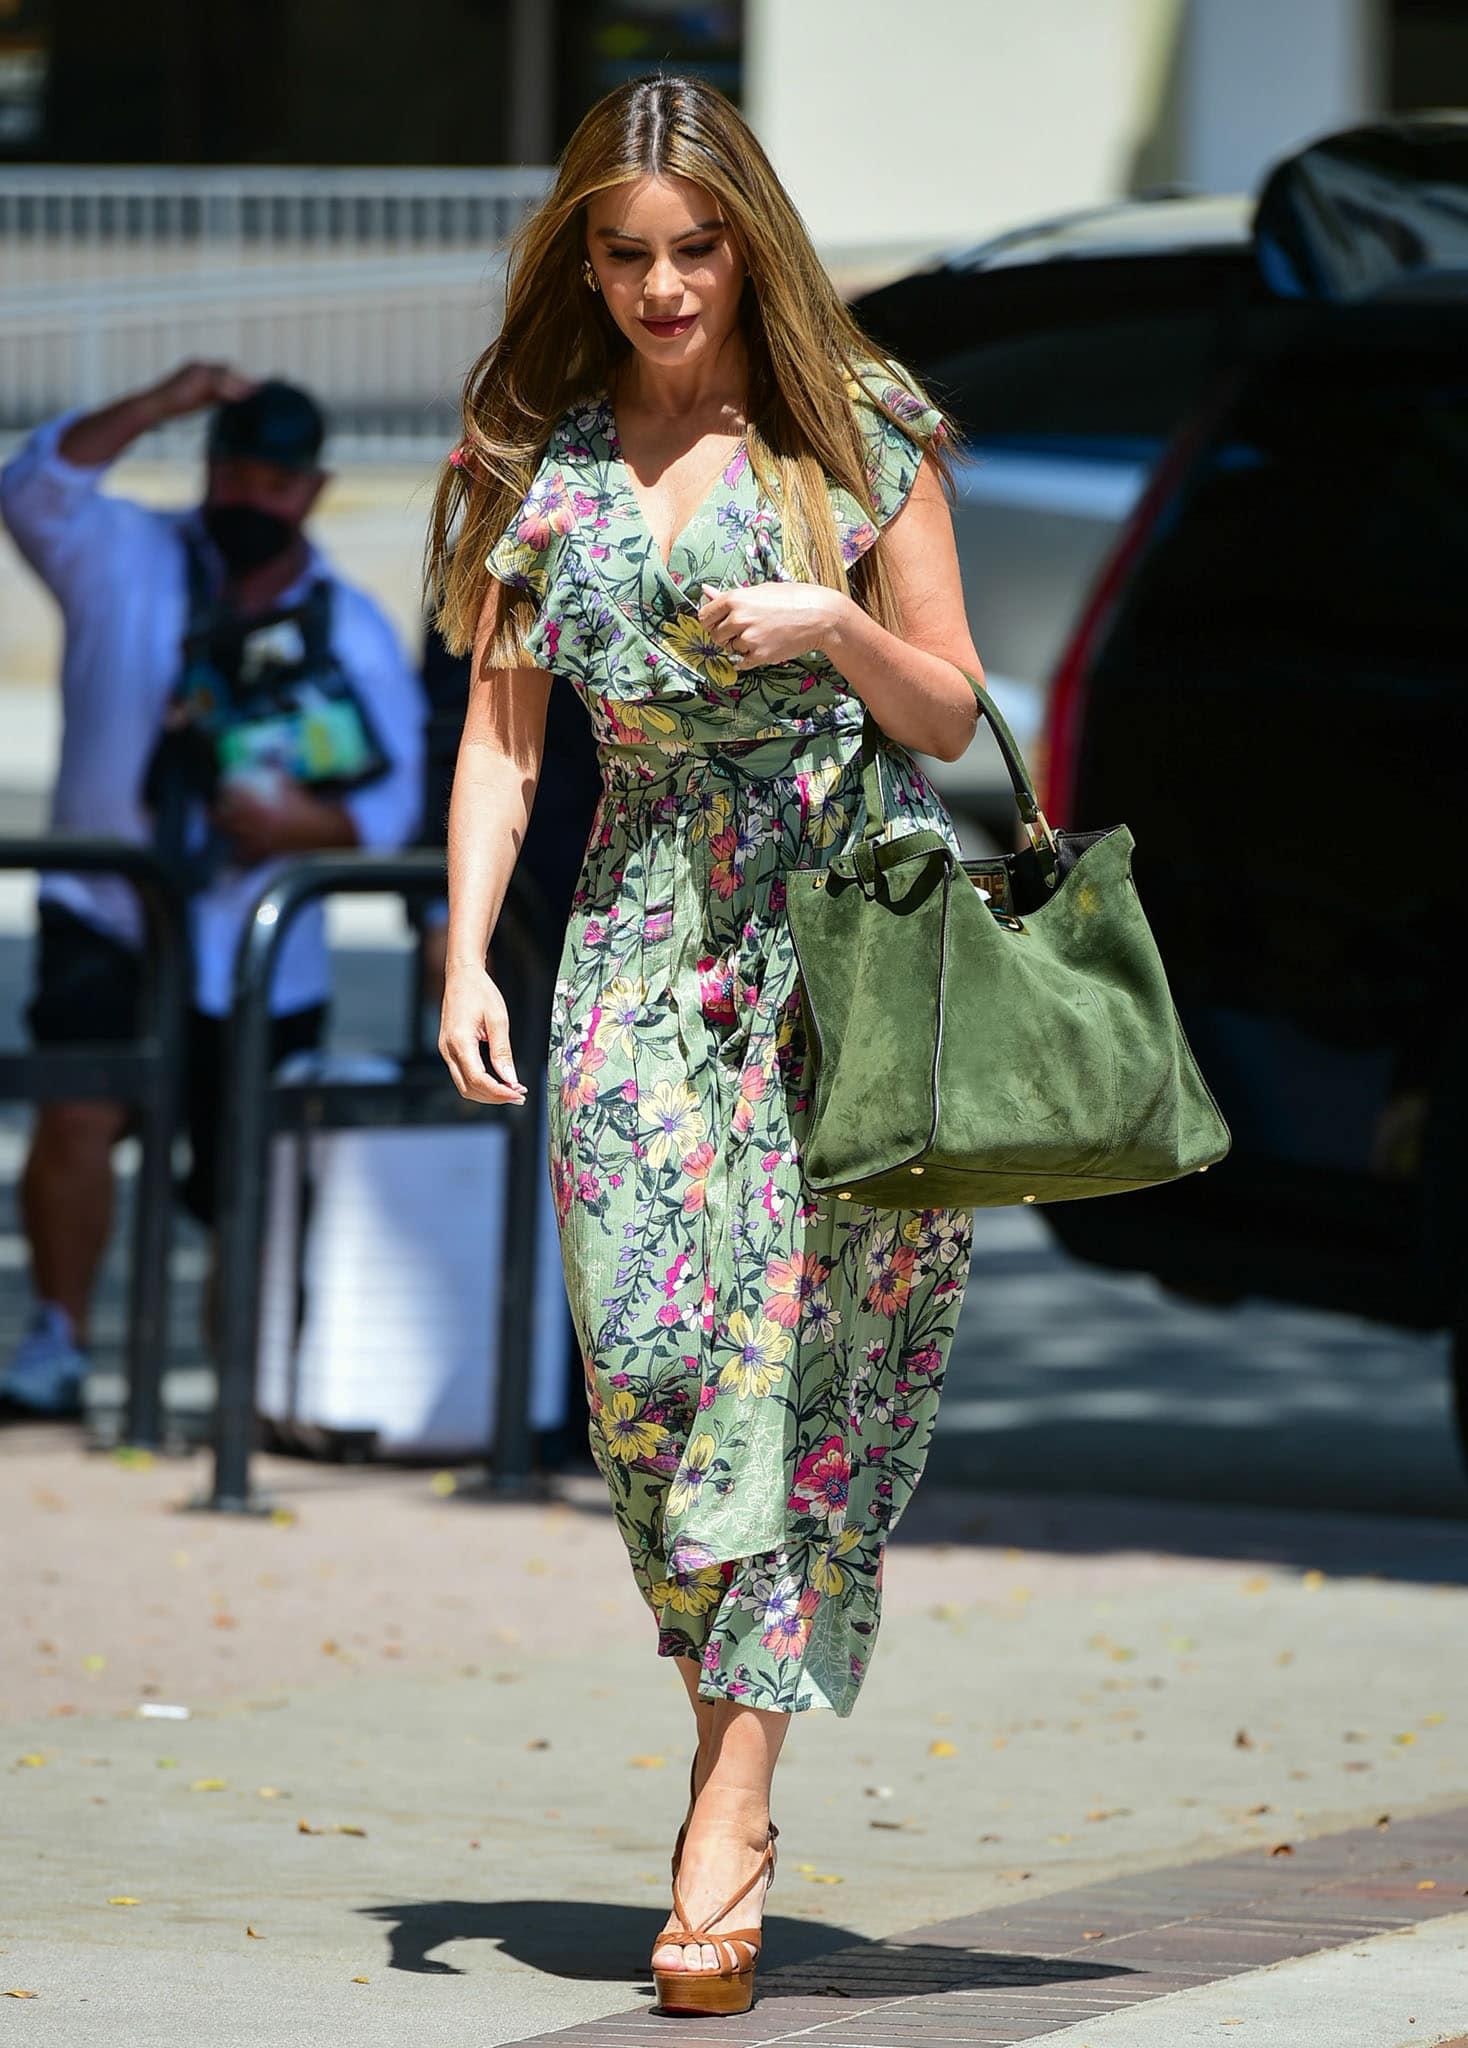 Sofia Vergara looks fresh in Sofia Jeans floral-print green dress on April 17, 2021